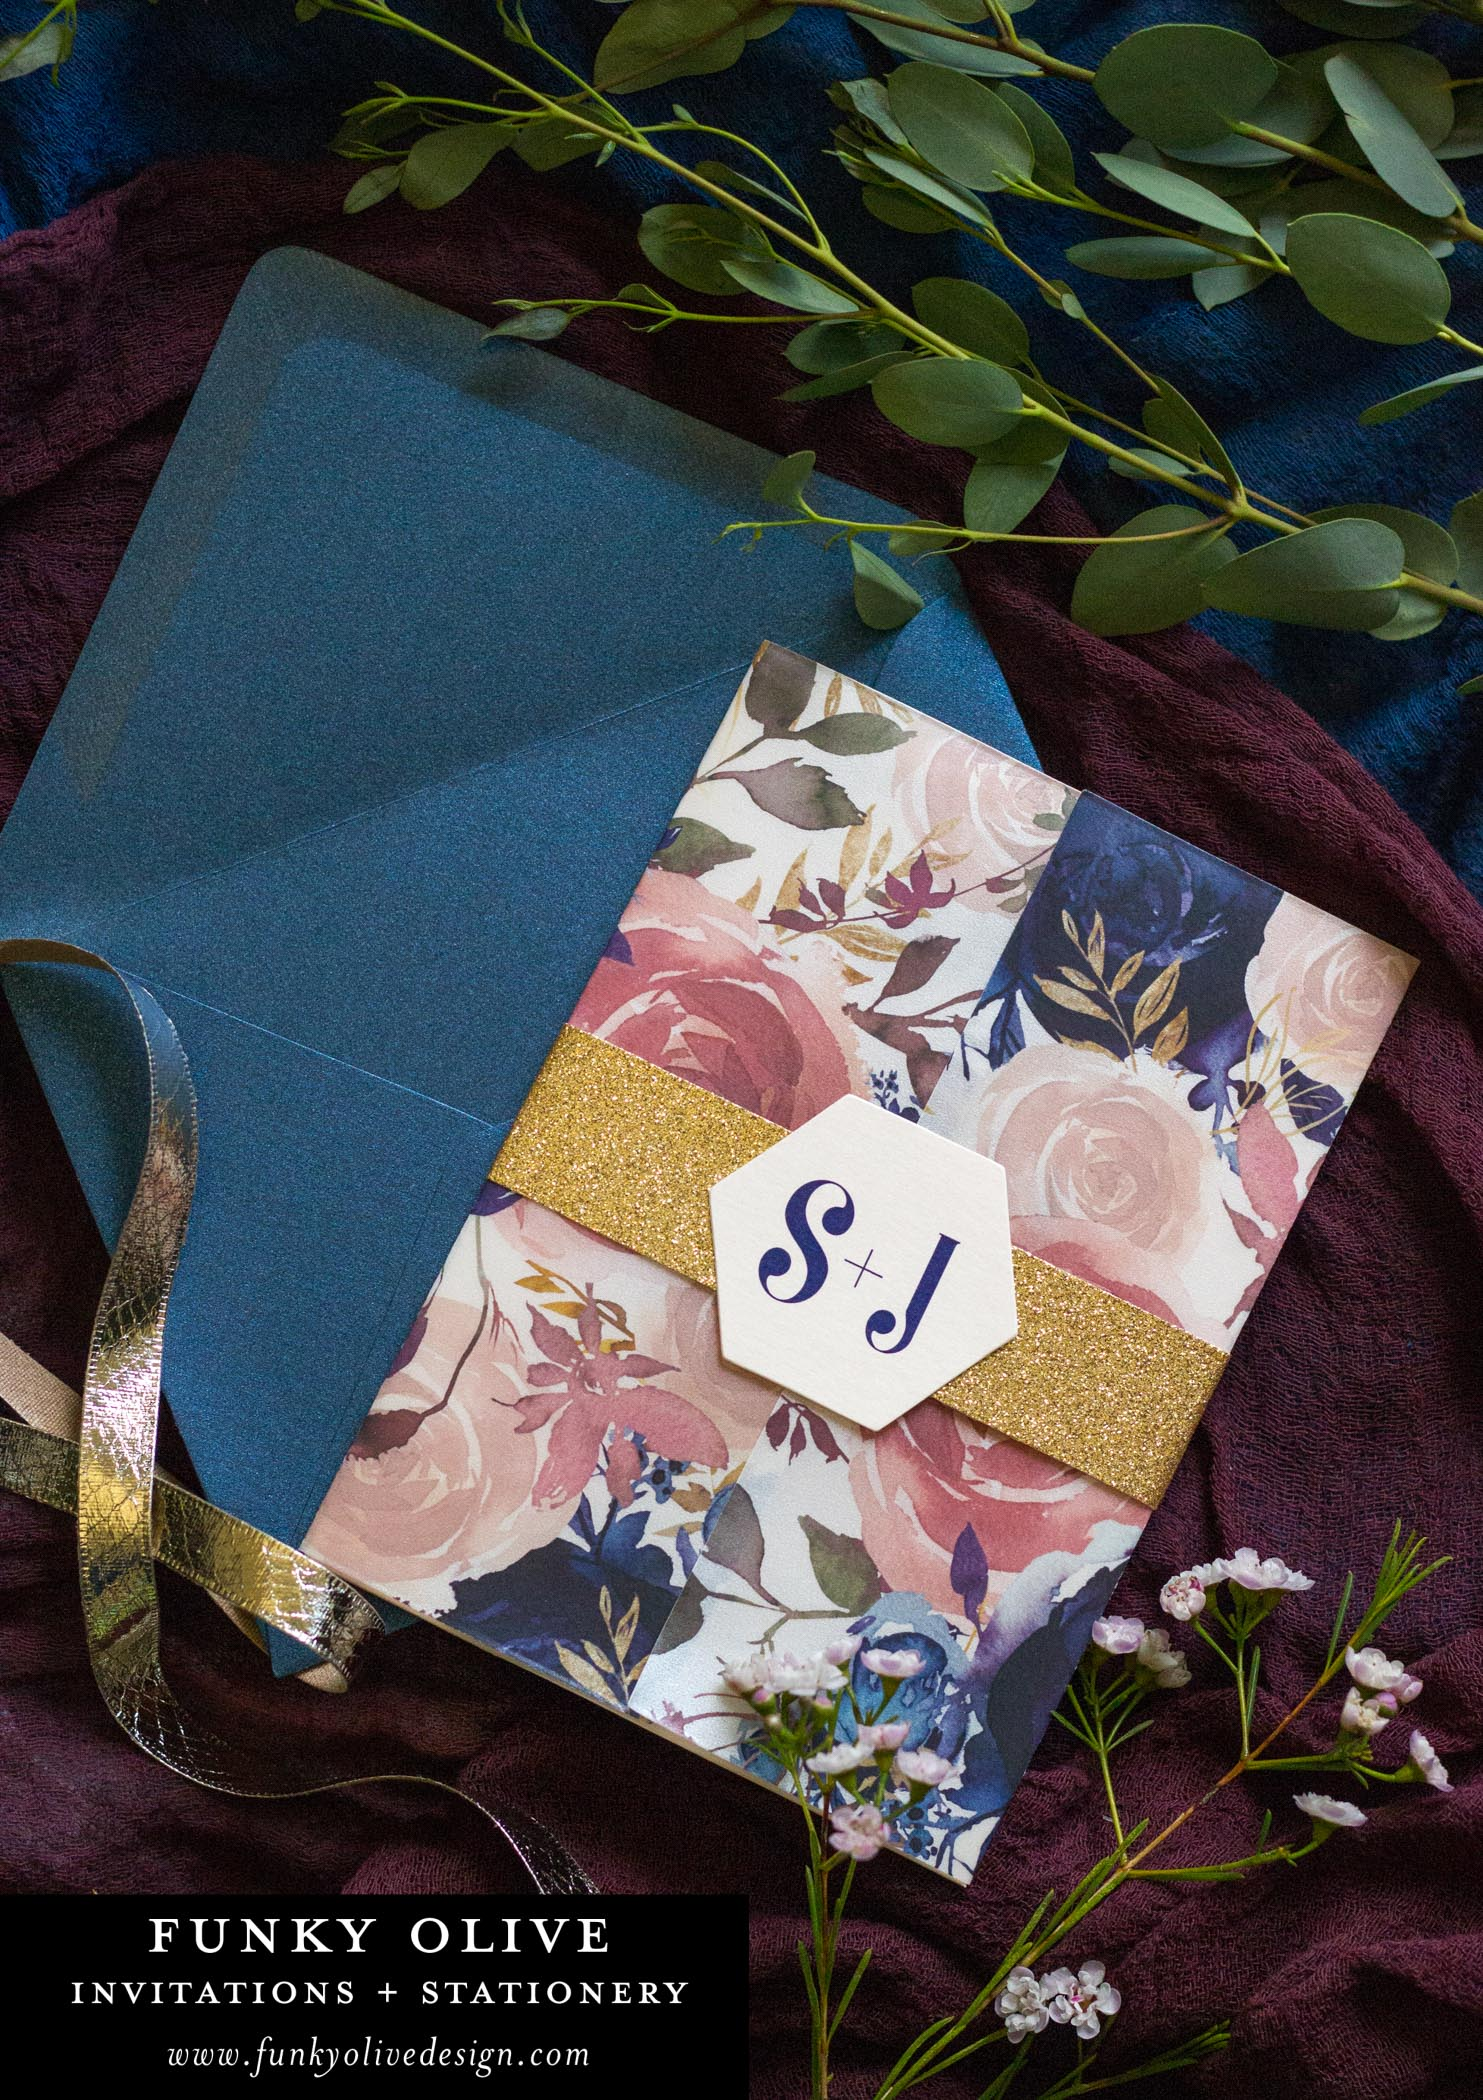 This vellum wrapped invitation suite in navy, blush and gold is sure to please!